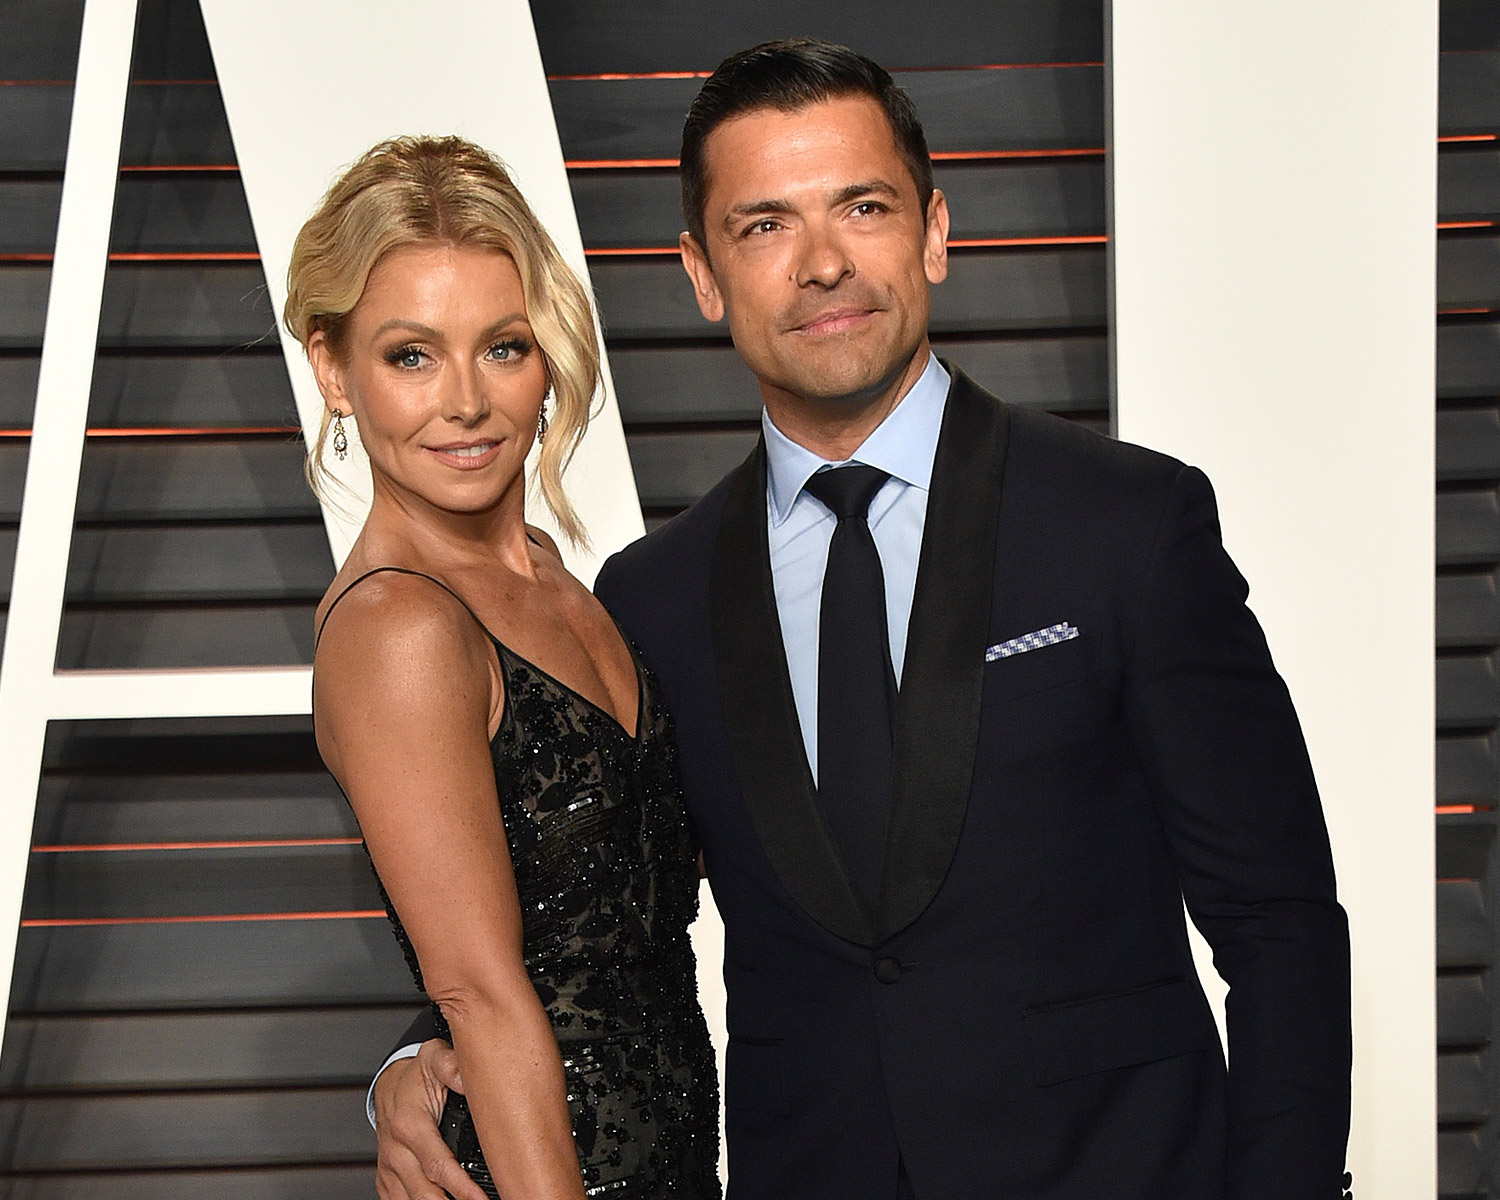 kelly-ripa-wishes-finest-man-mark-consuelos-a-happy-birthday-with-sweet-message